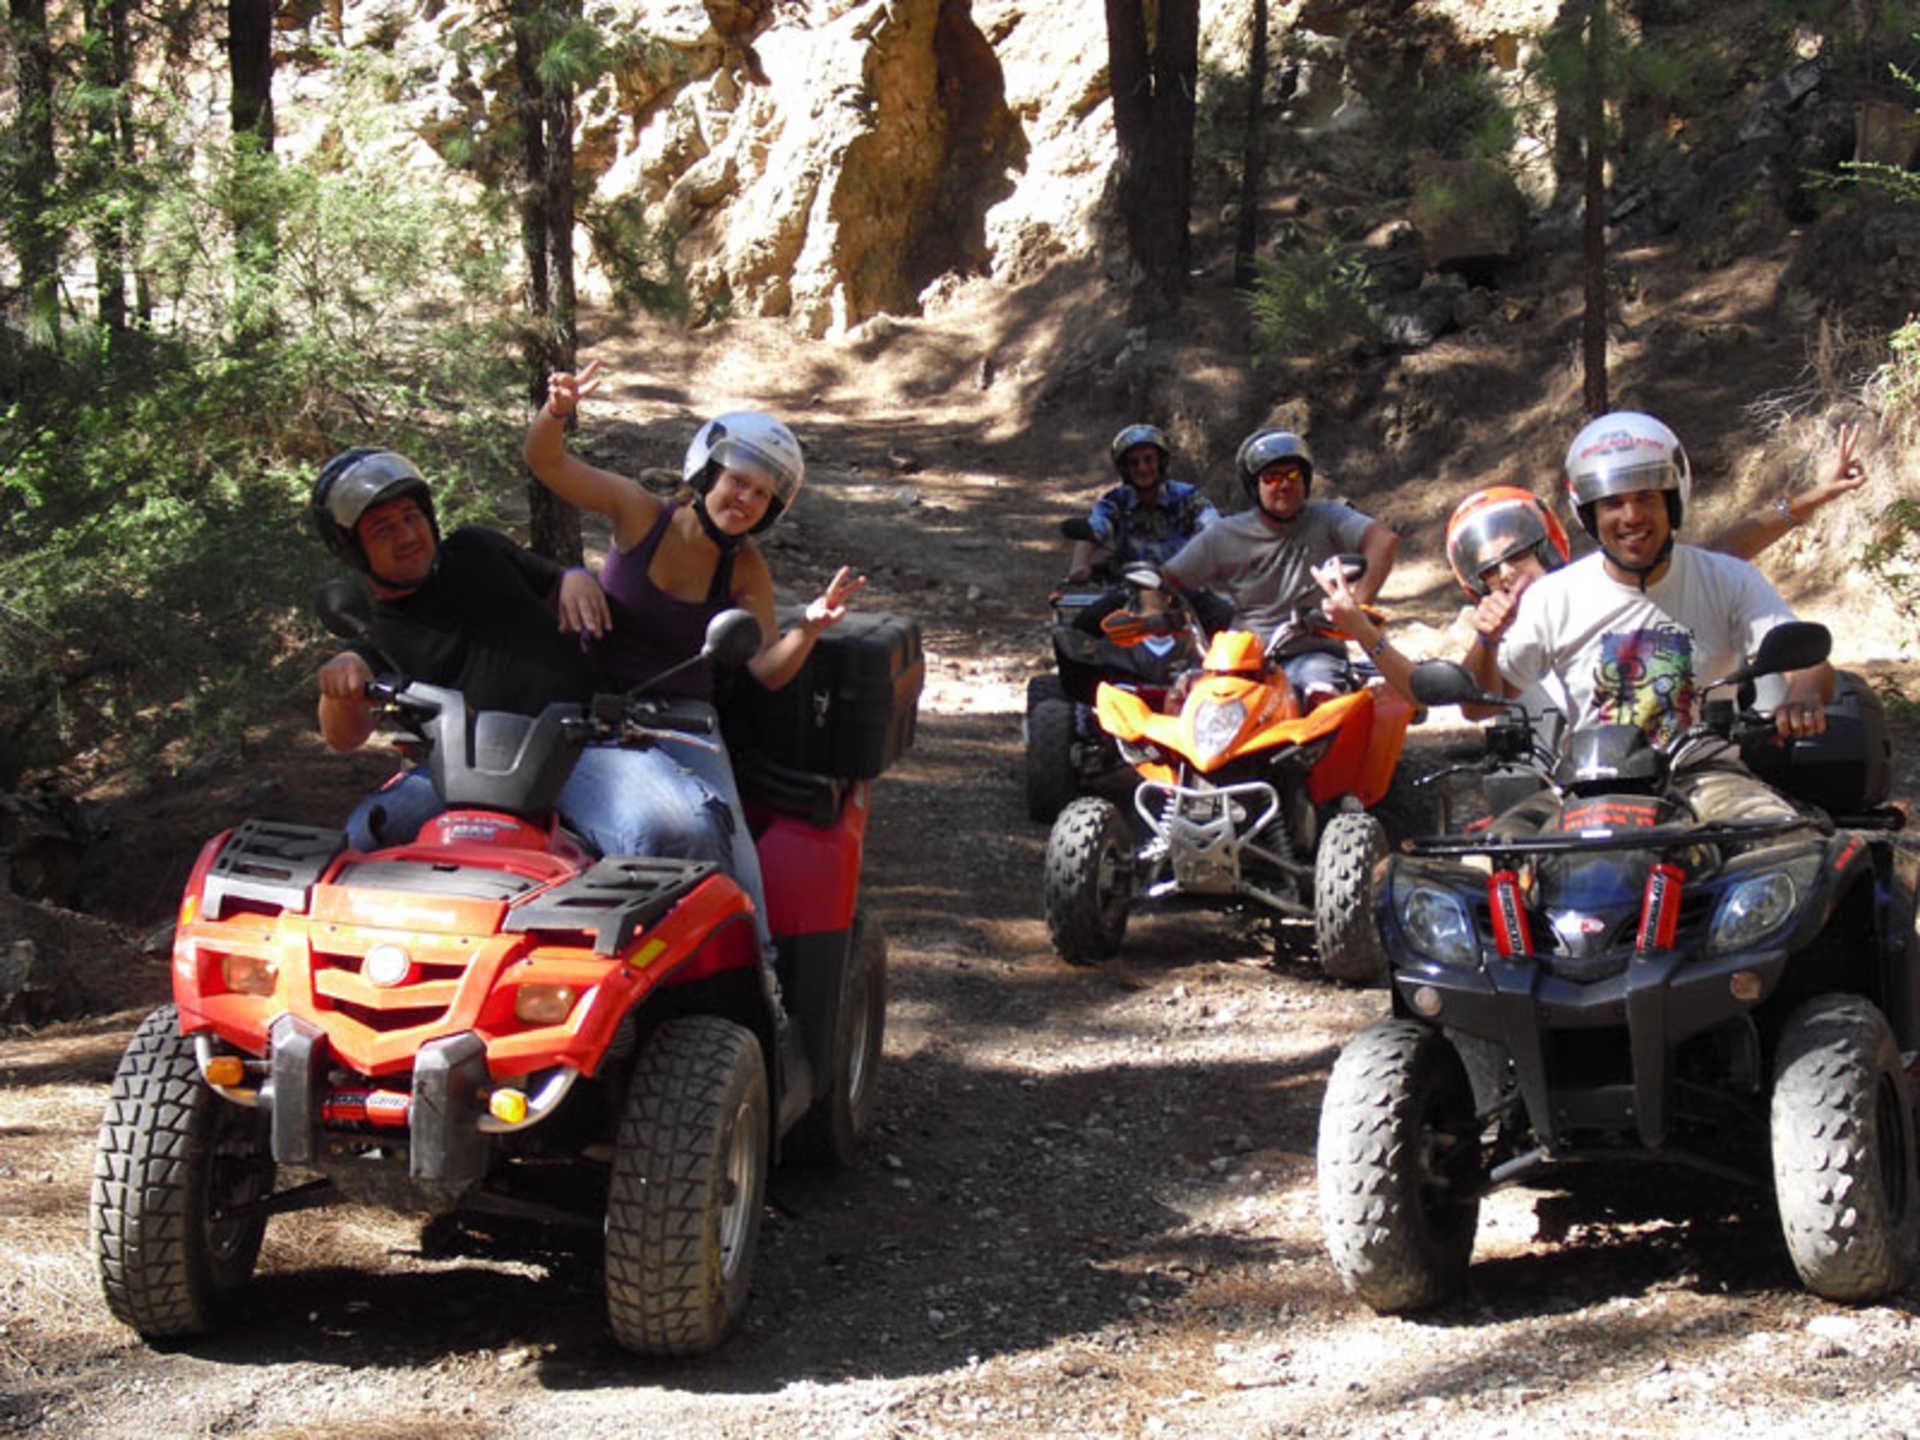 Spainventure Why do we need Adventure Quad at Sierra Nevada Fuengirola